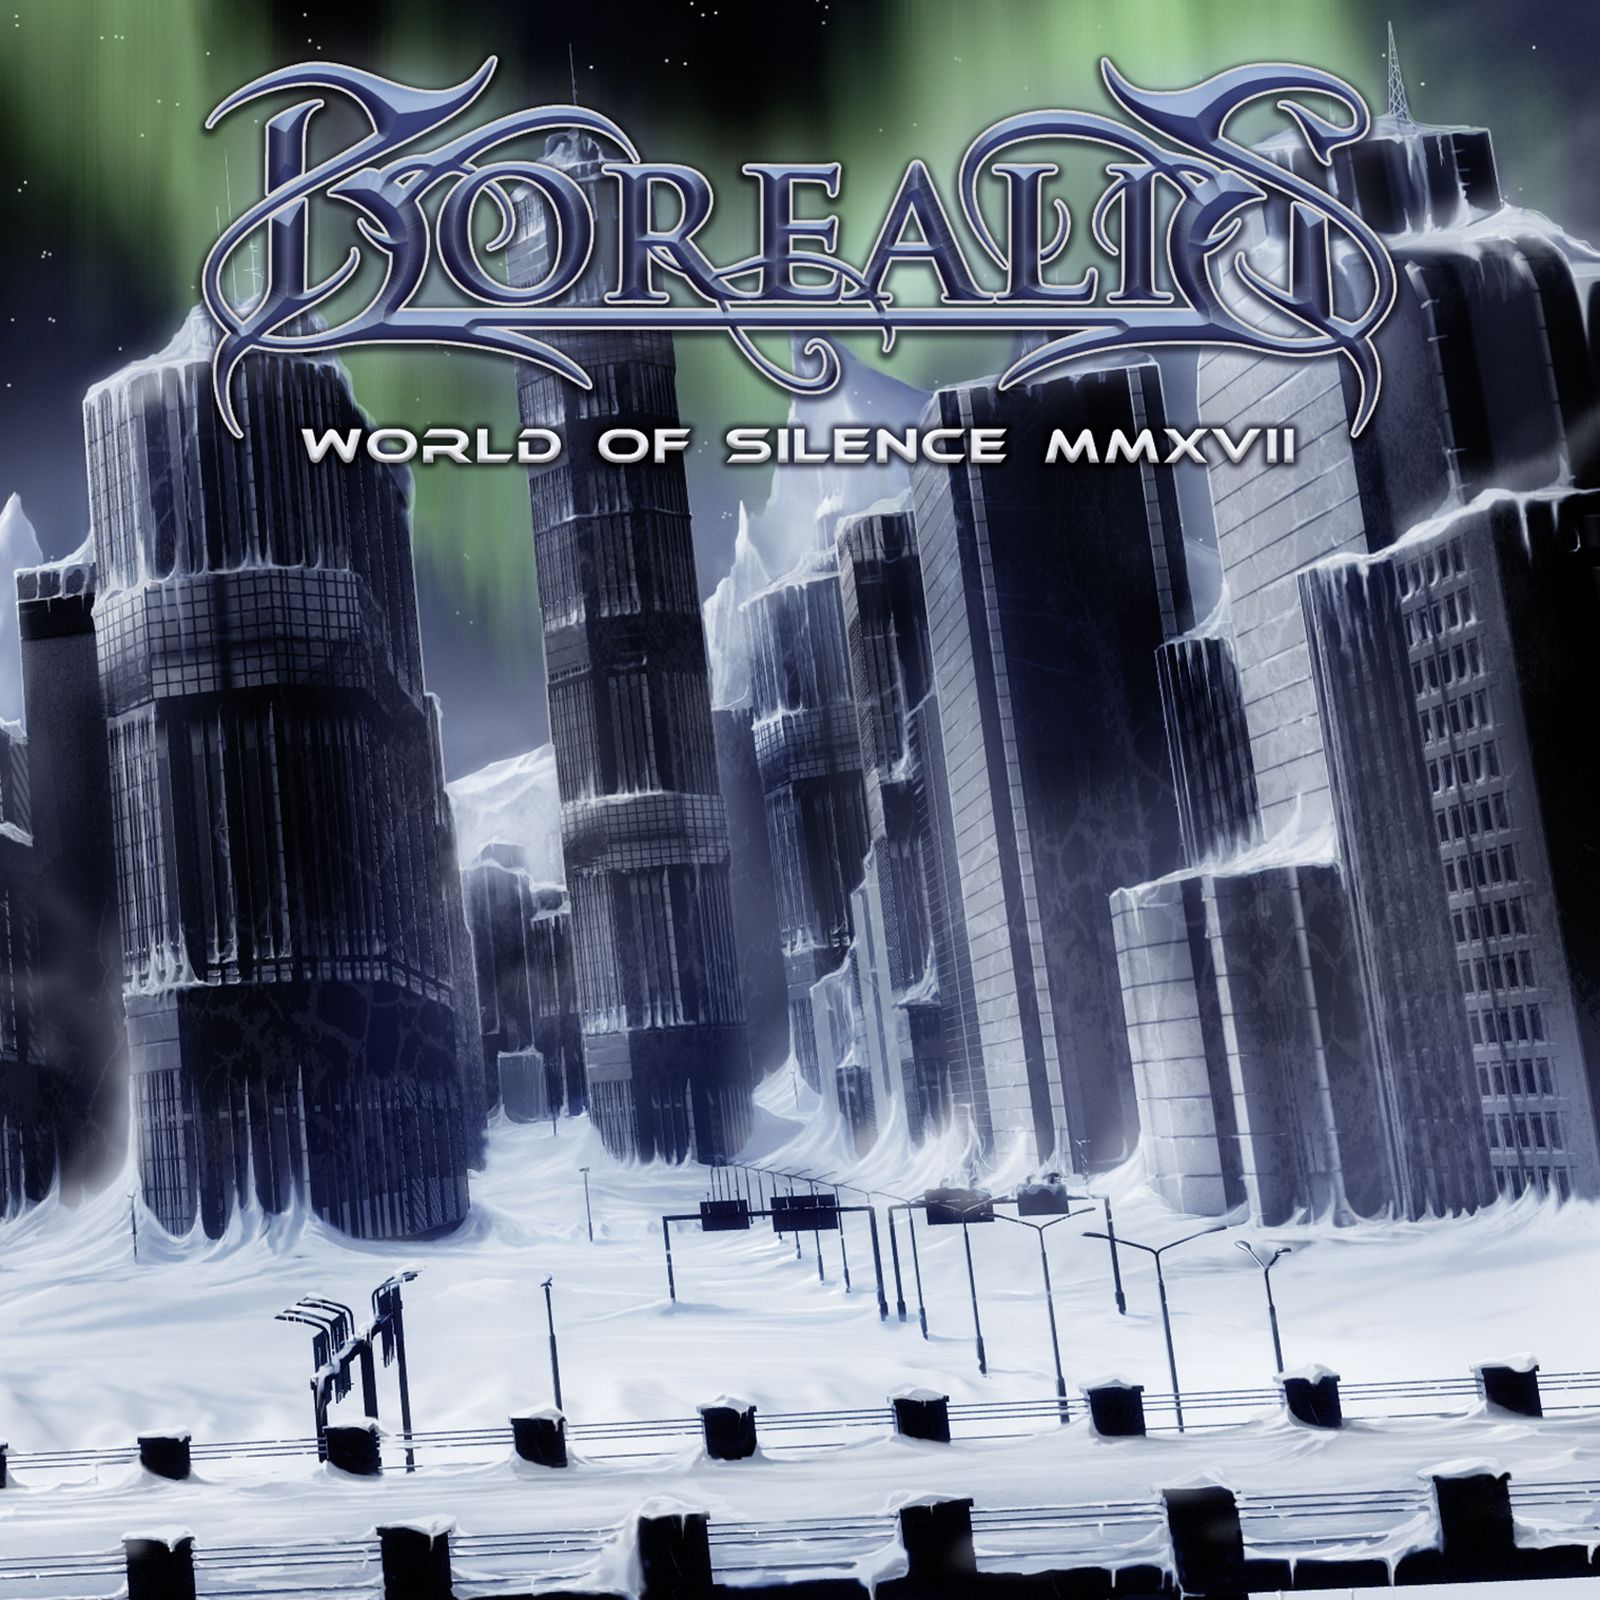 CD review BOREALIS &quot&#x3B;World of Silence MMXVII&quot&#x3B;